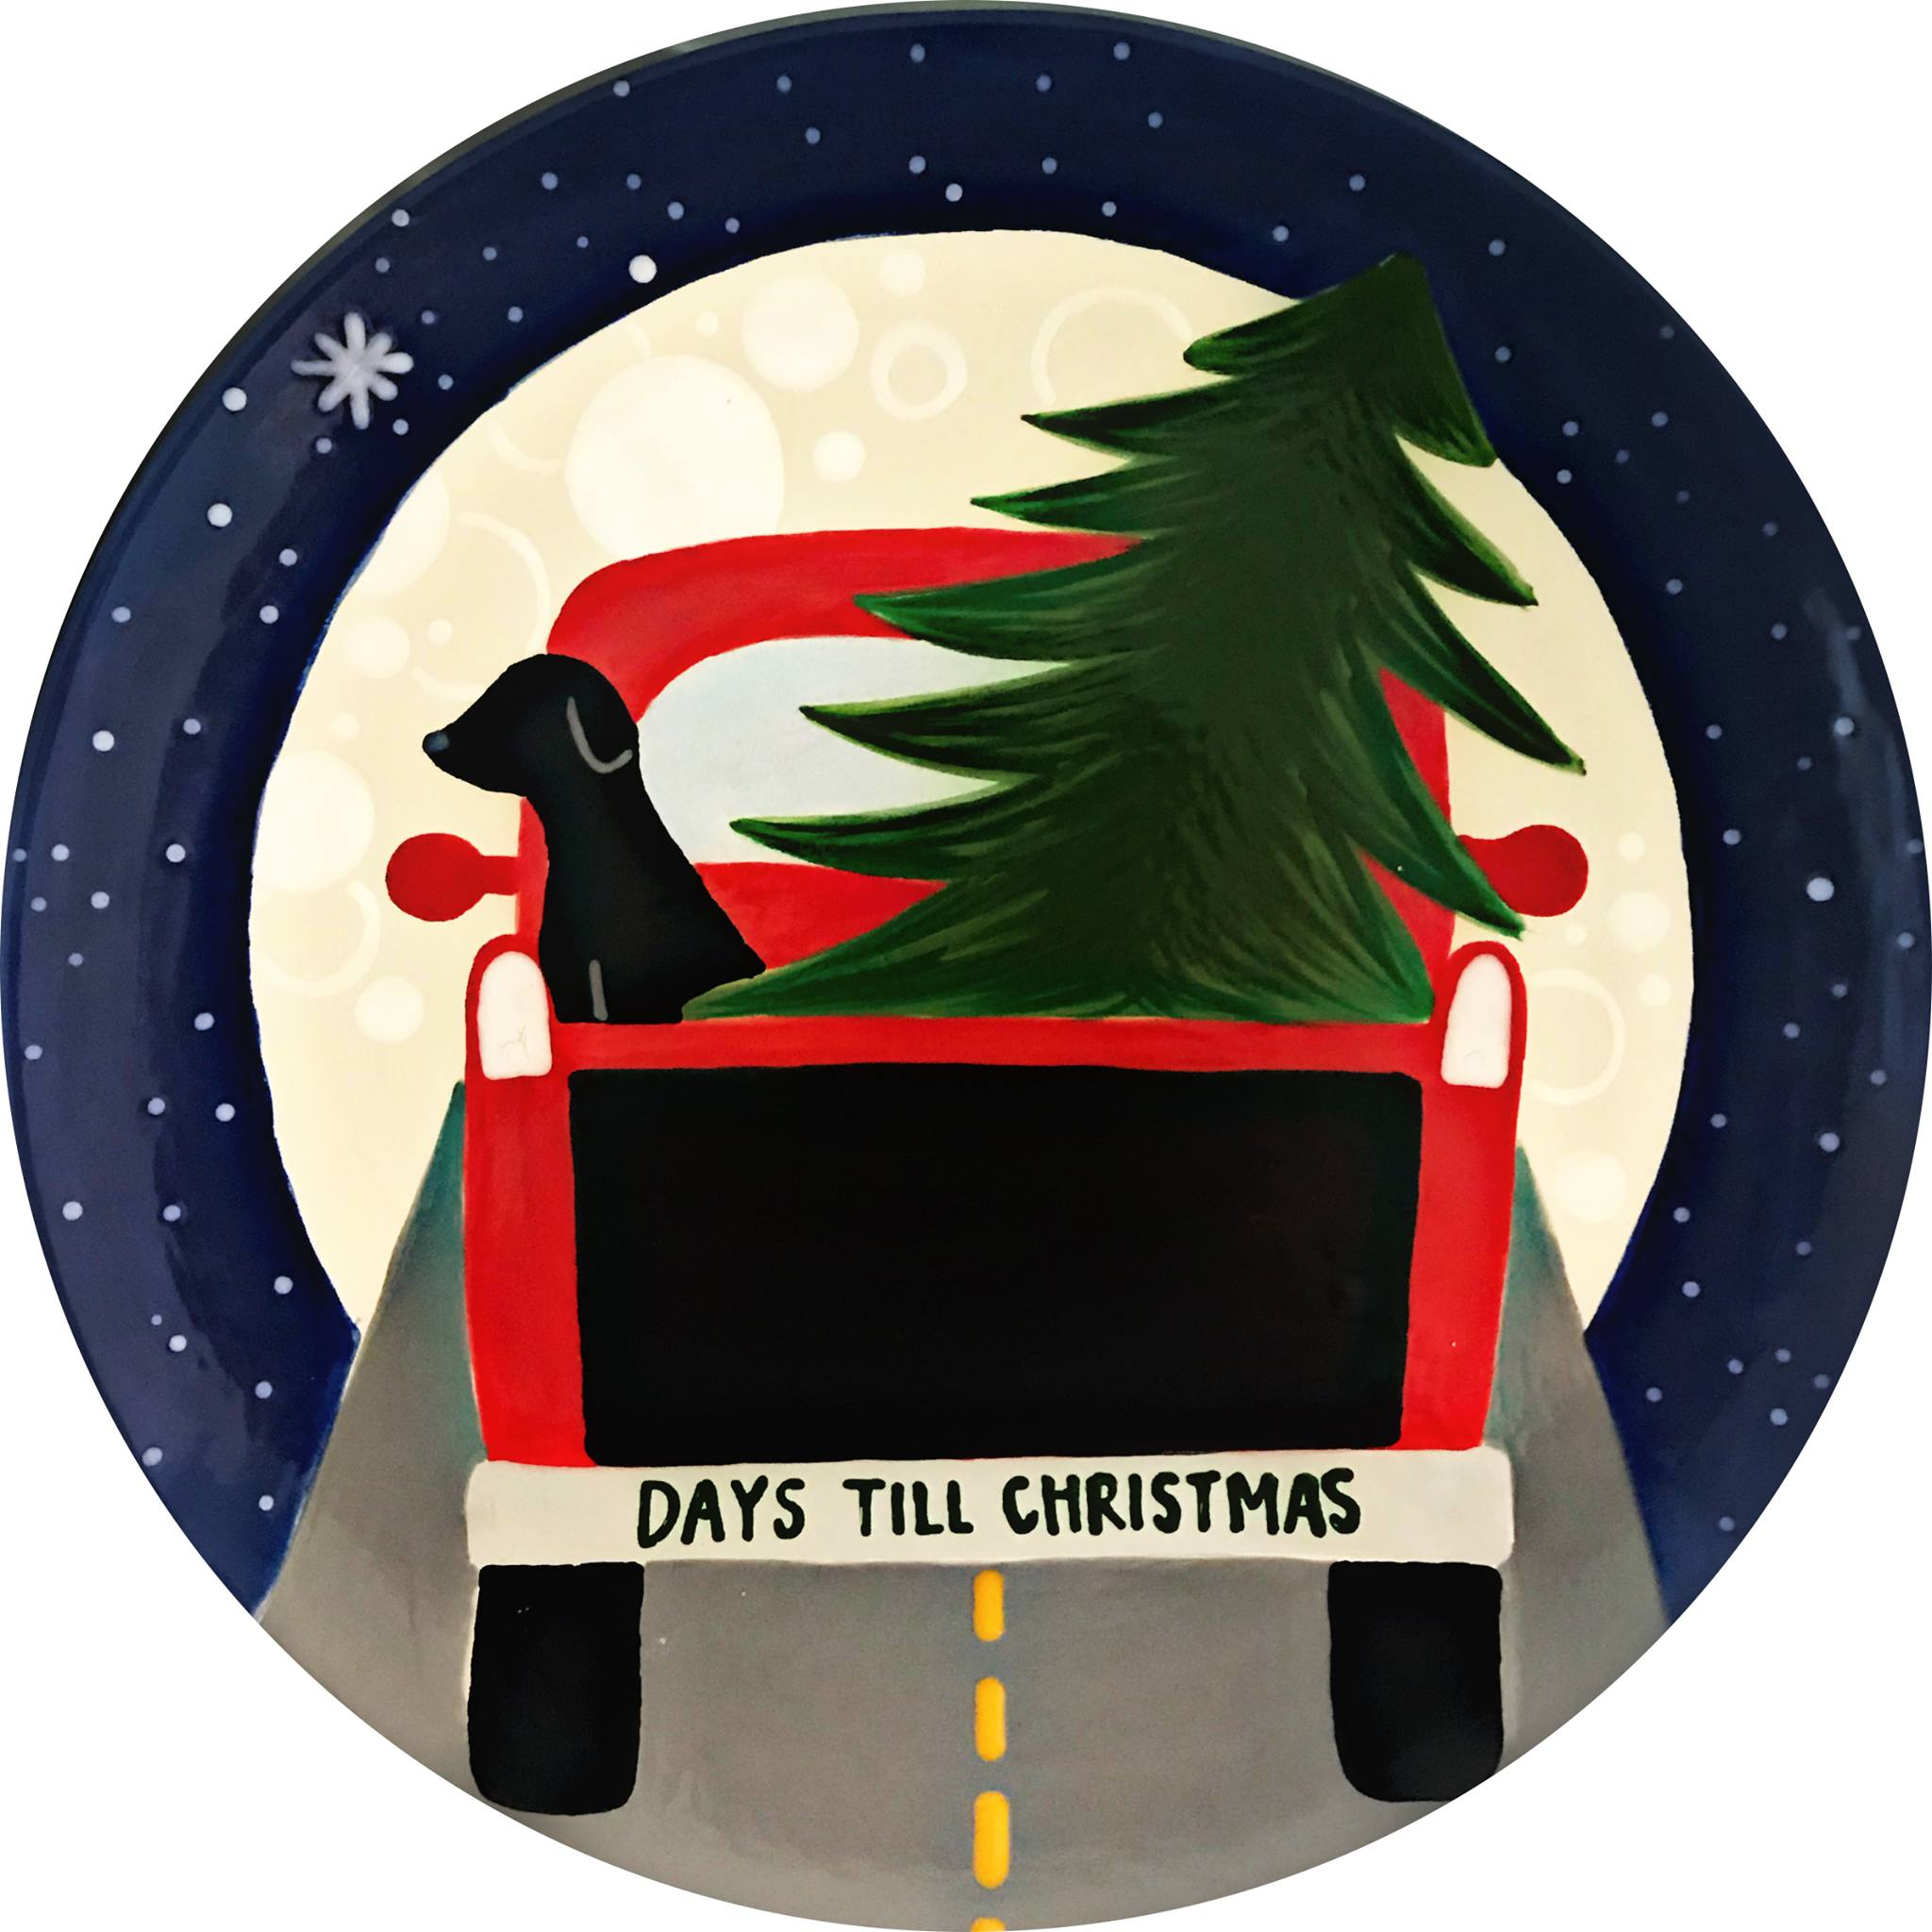 Red truck with black dog and Christmas tree